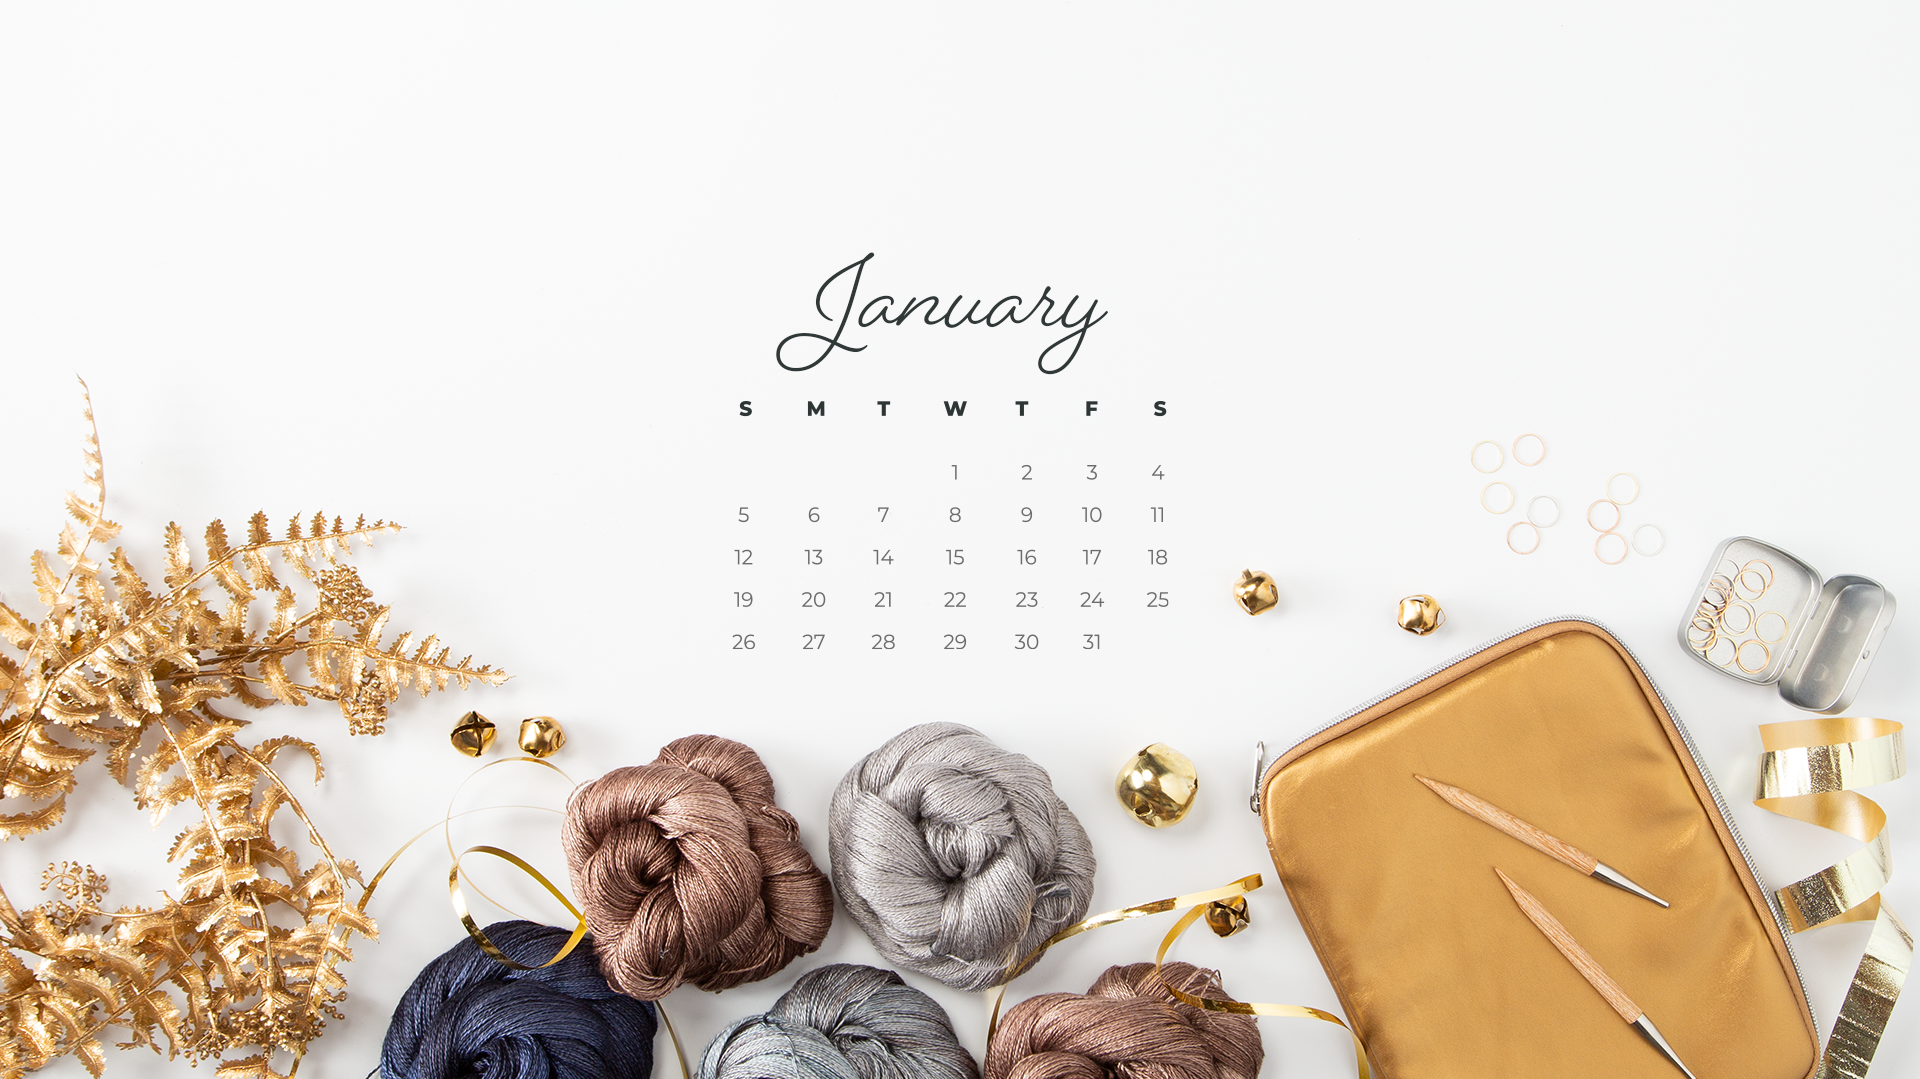 Downloadable January Calendar   KnitPicks Staff Knitting Blog 1920x1079